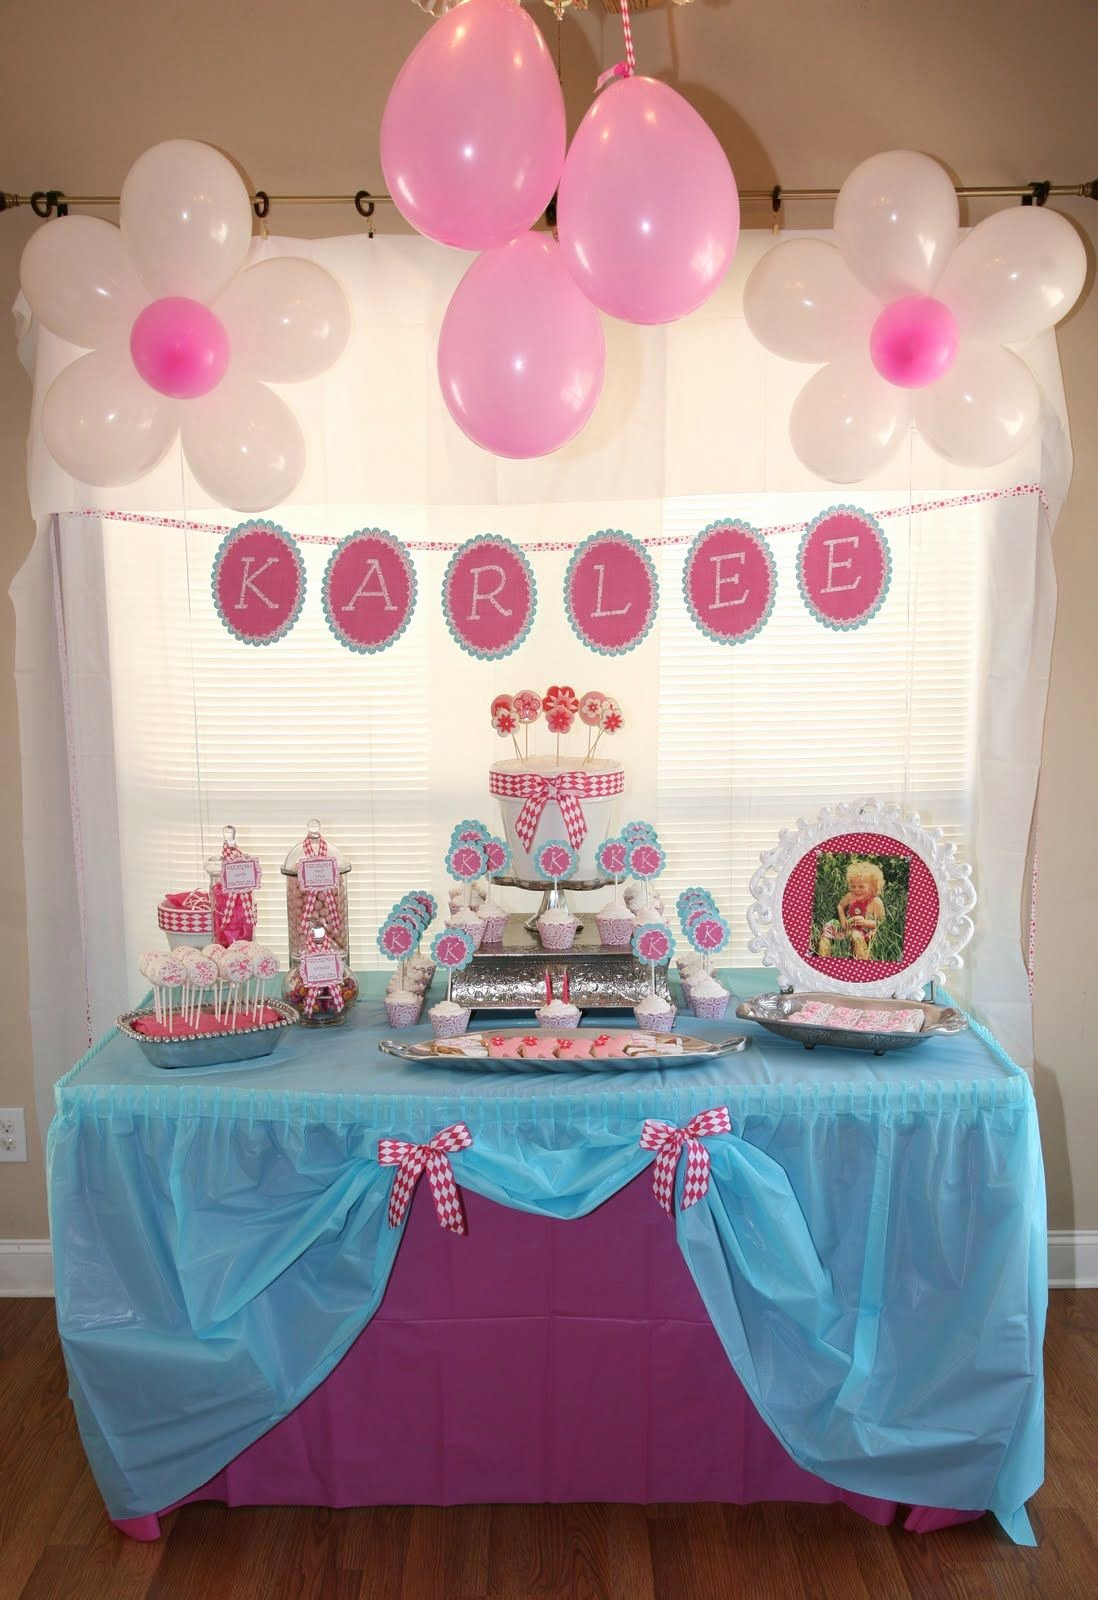 Birthday Decoration Ideas at Home for Girls Best Of 6 Best Princess Birthday Decoration Ideas for Girls Images